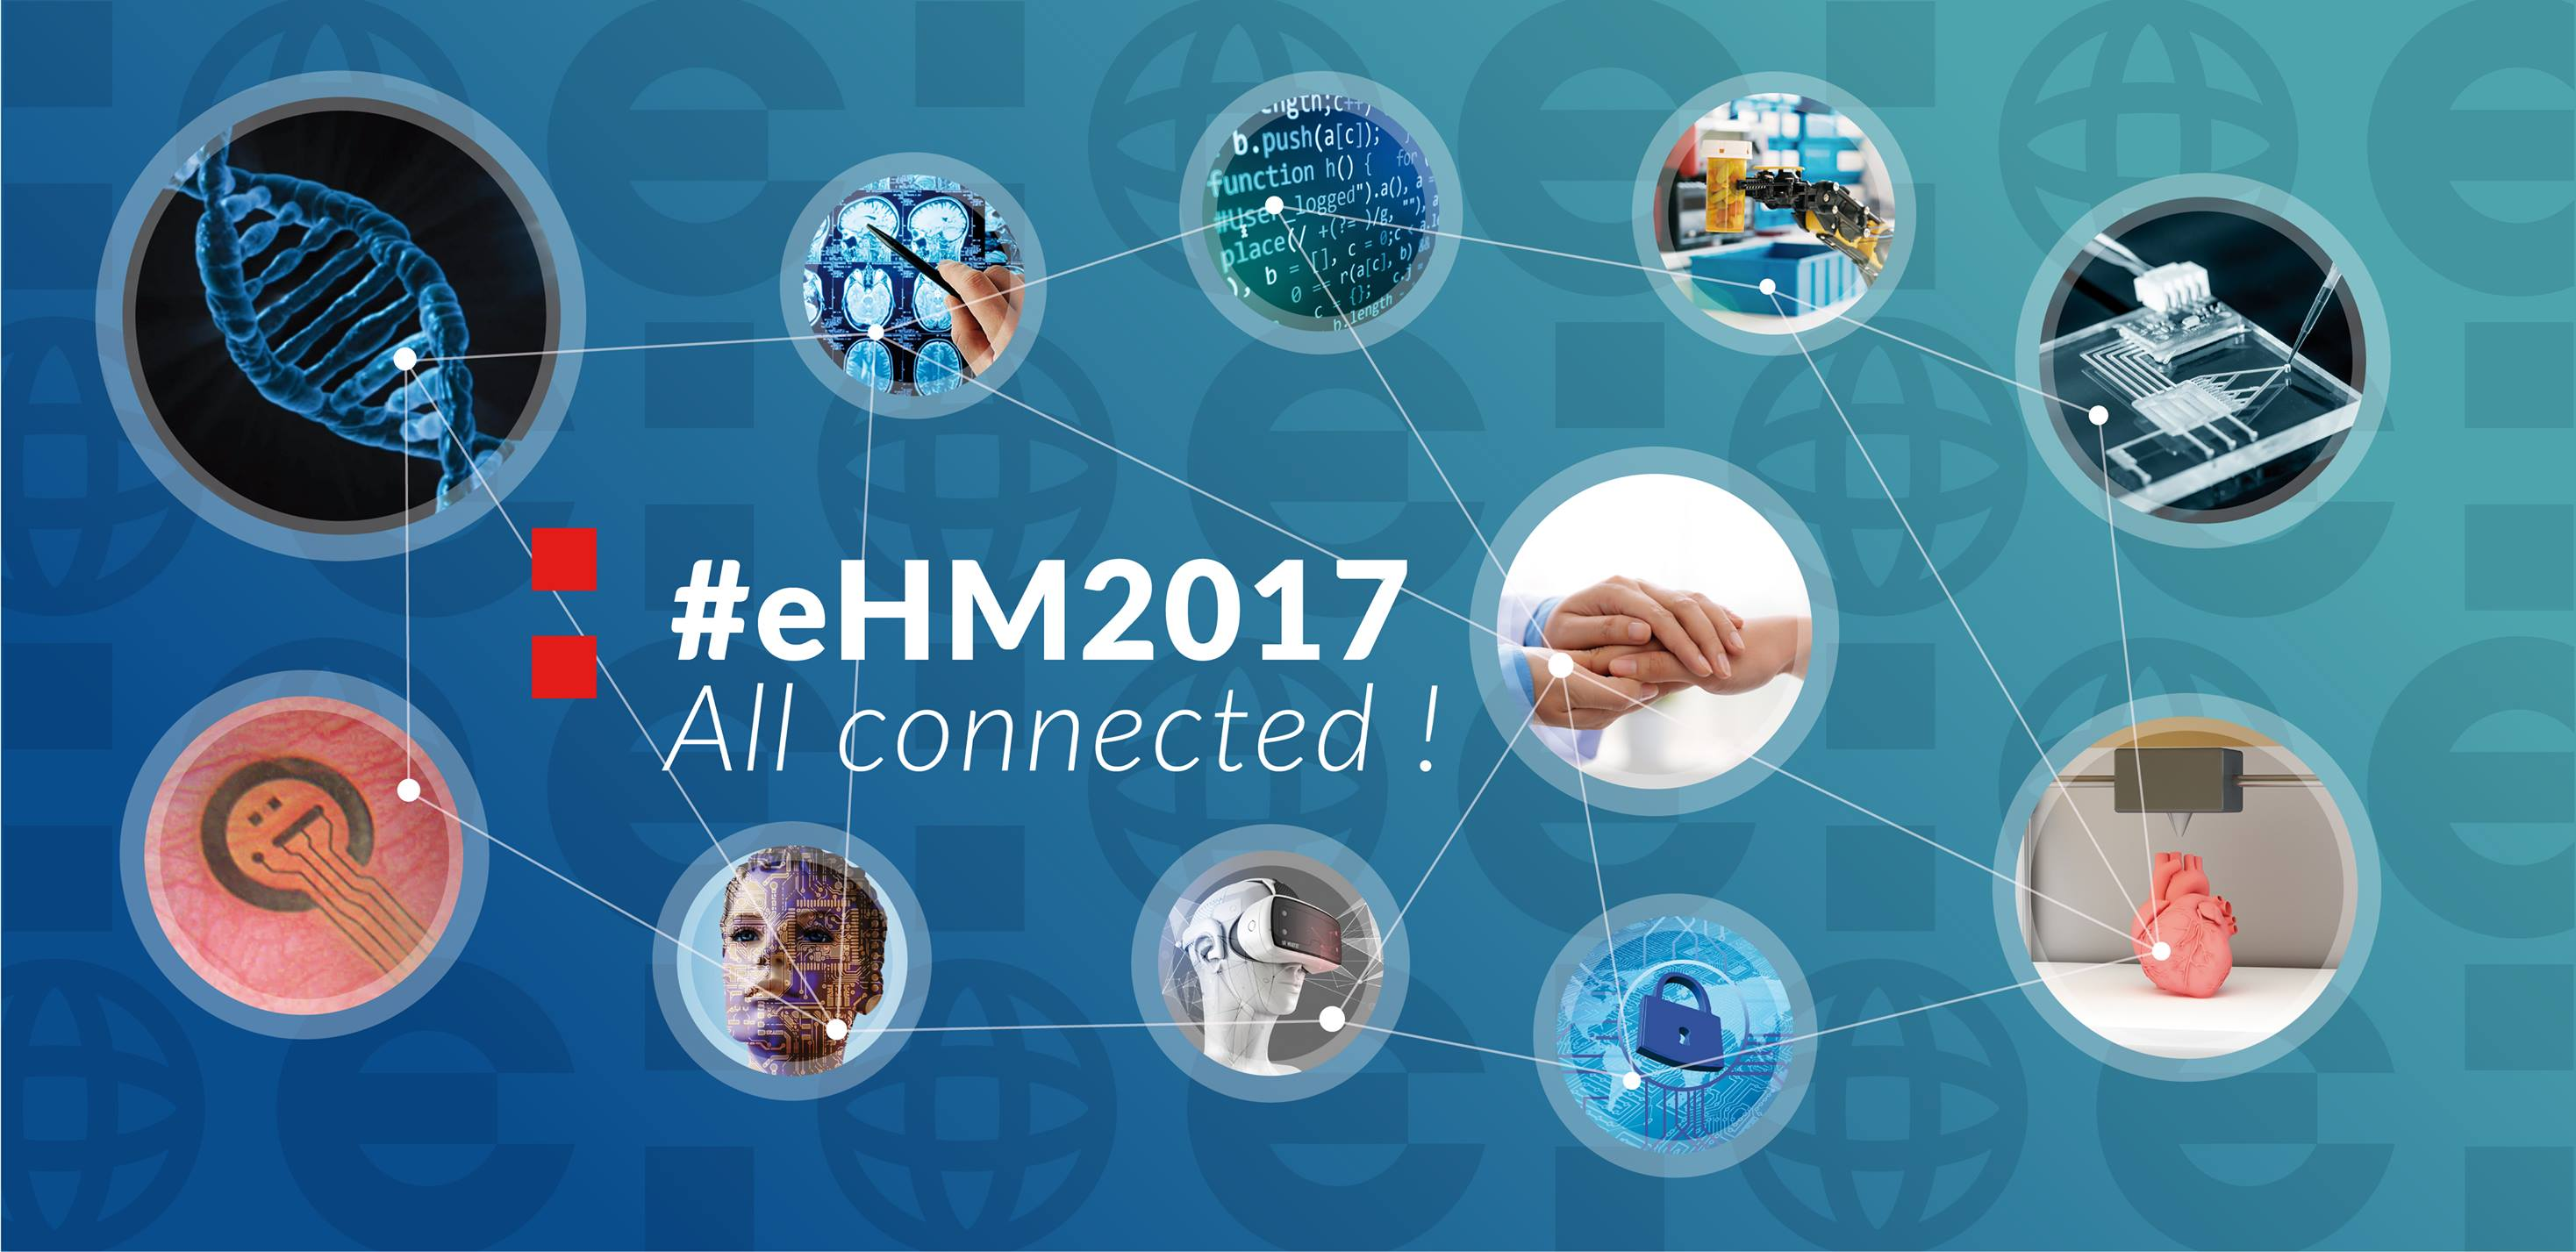 eHM2017 All connected banniere